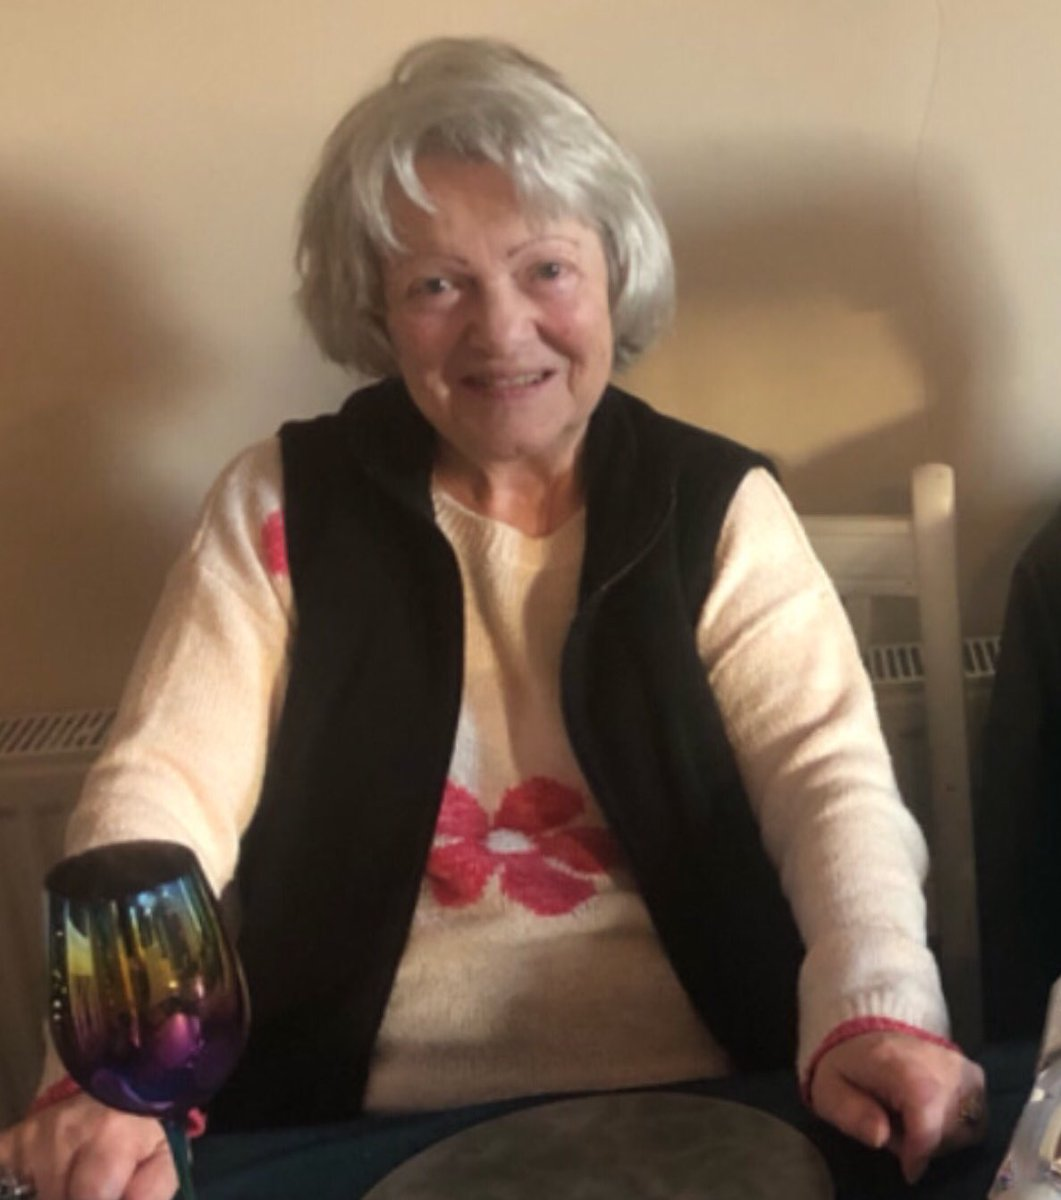 iLogicsHD - This lady has been there for me countless times in my life. Supported my ventures and always helped where she could. She has survived battles with Cancer, diabetes and even losing half of one lung. This was all so sudden and the whole family will miss you. Love you Nan ❤️